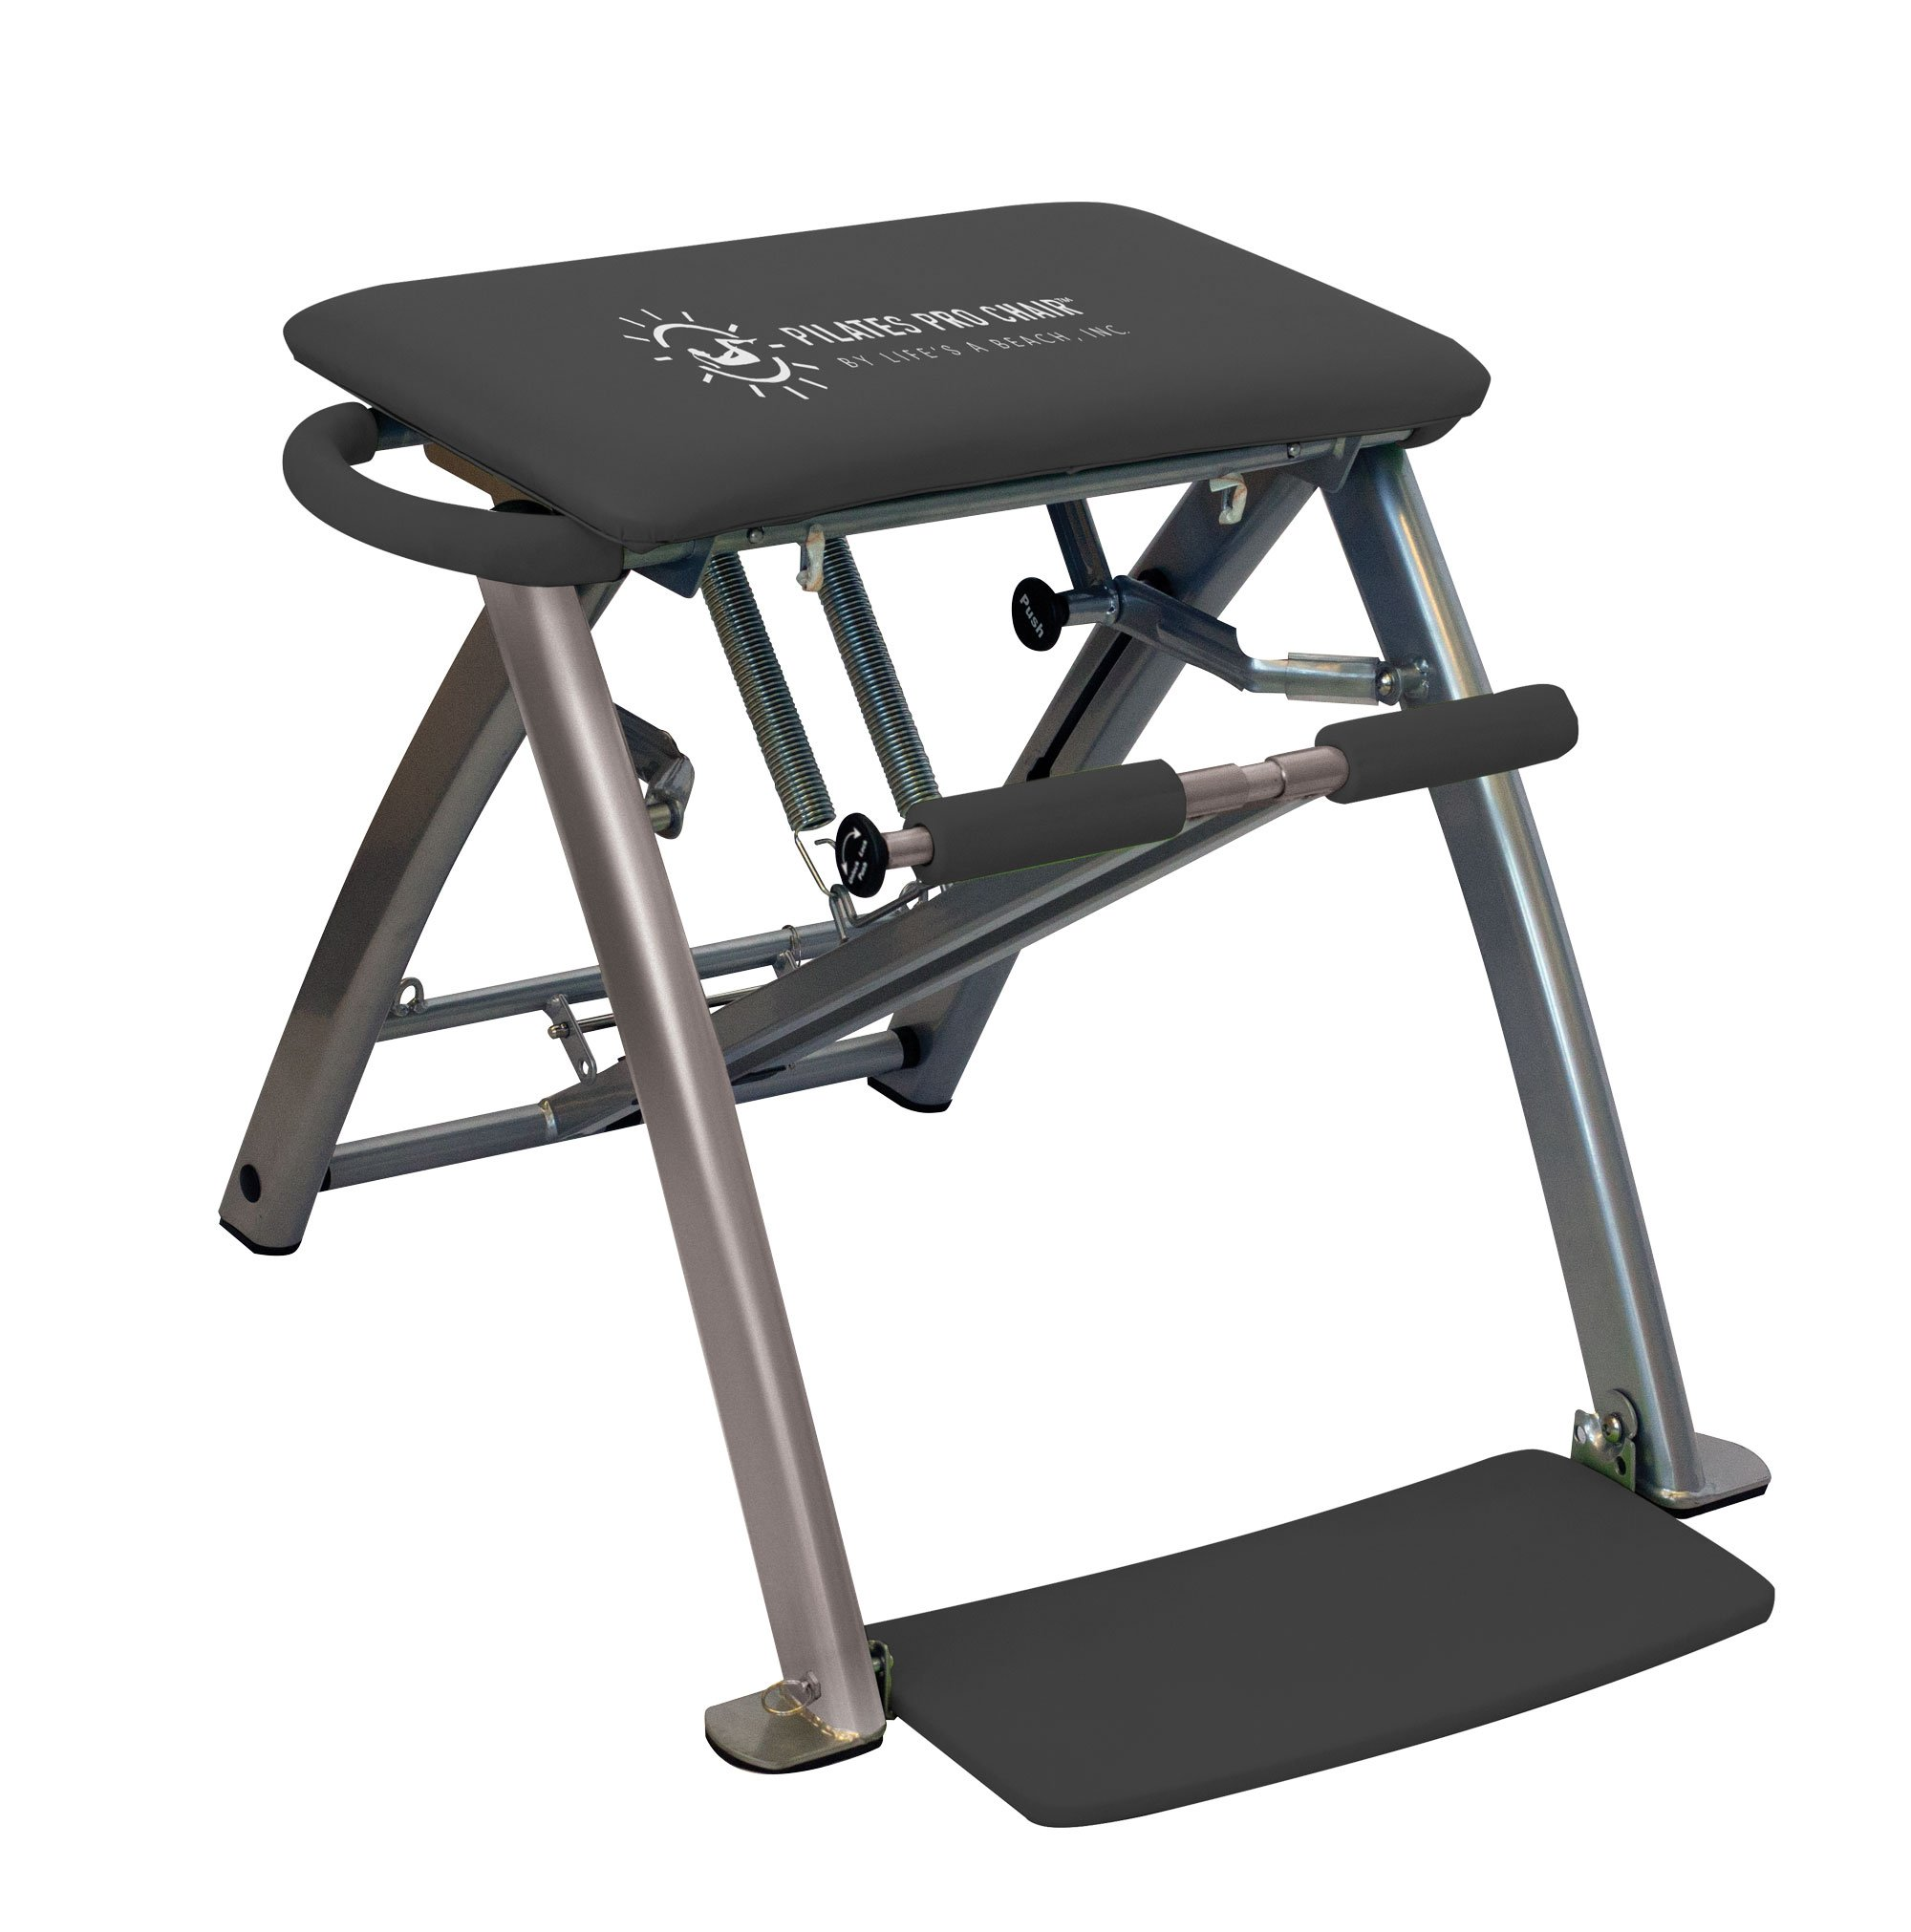 Life's A Beach Grey Pilates Pro Exercise Workout Fitness Chair Bench with 4 DVDs